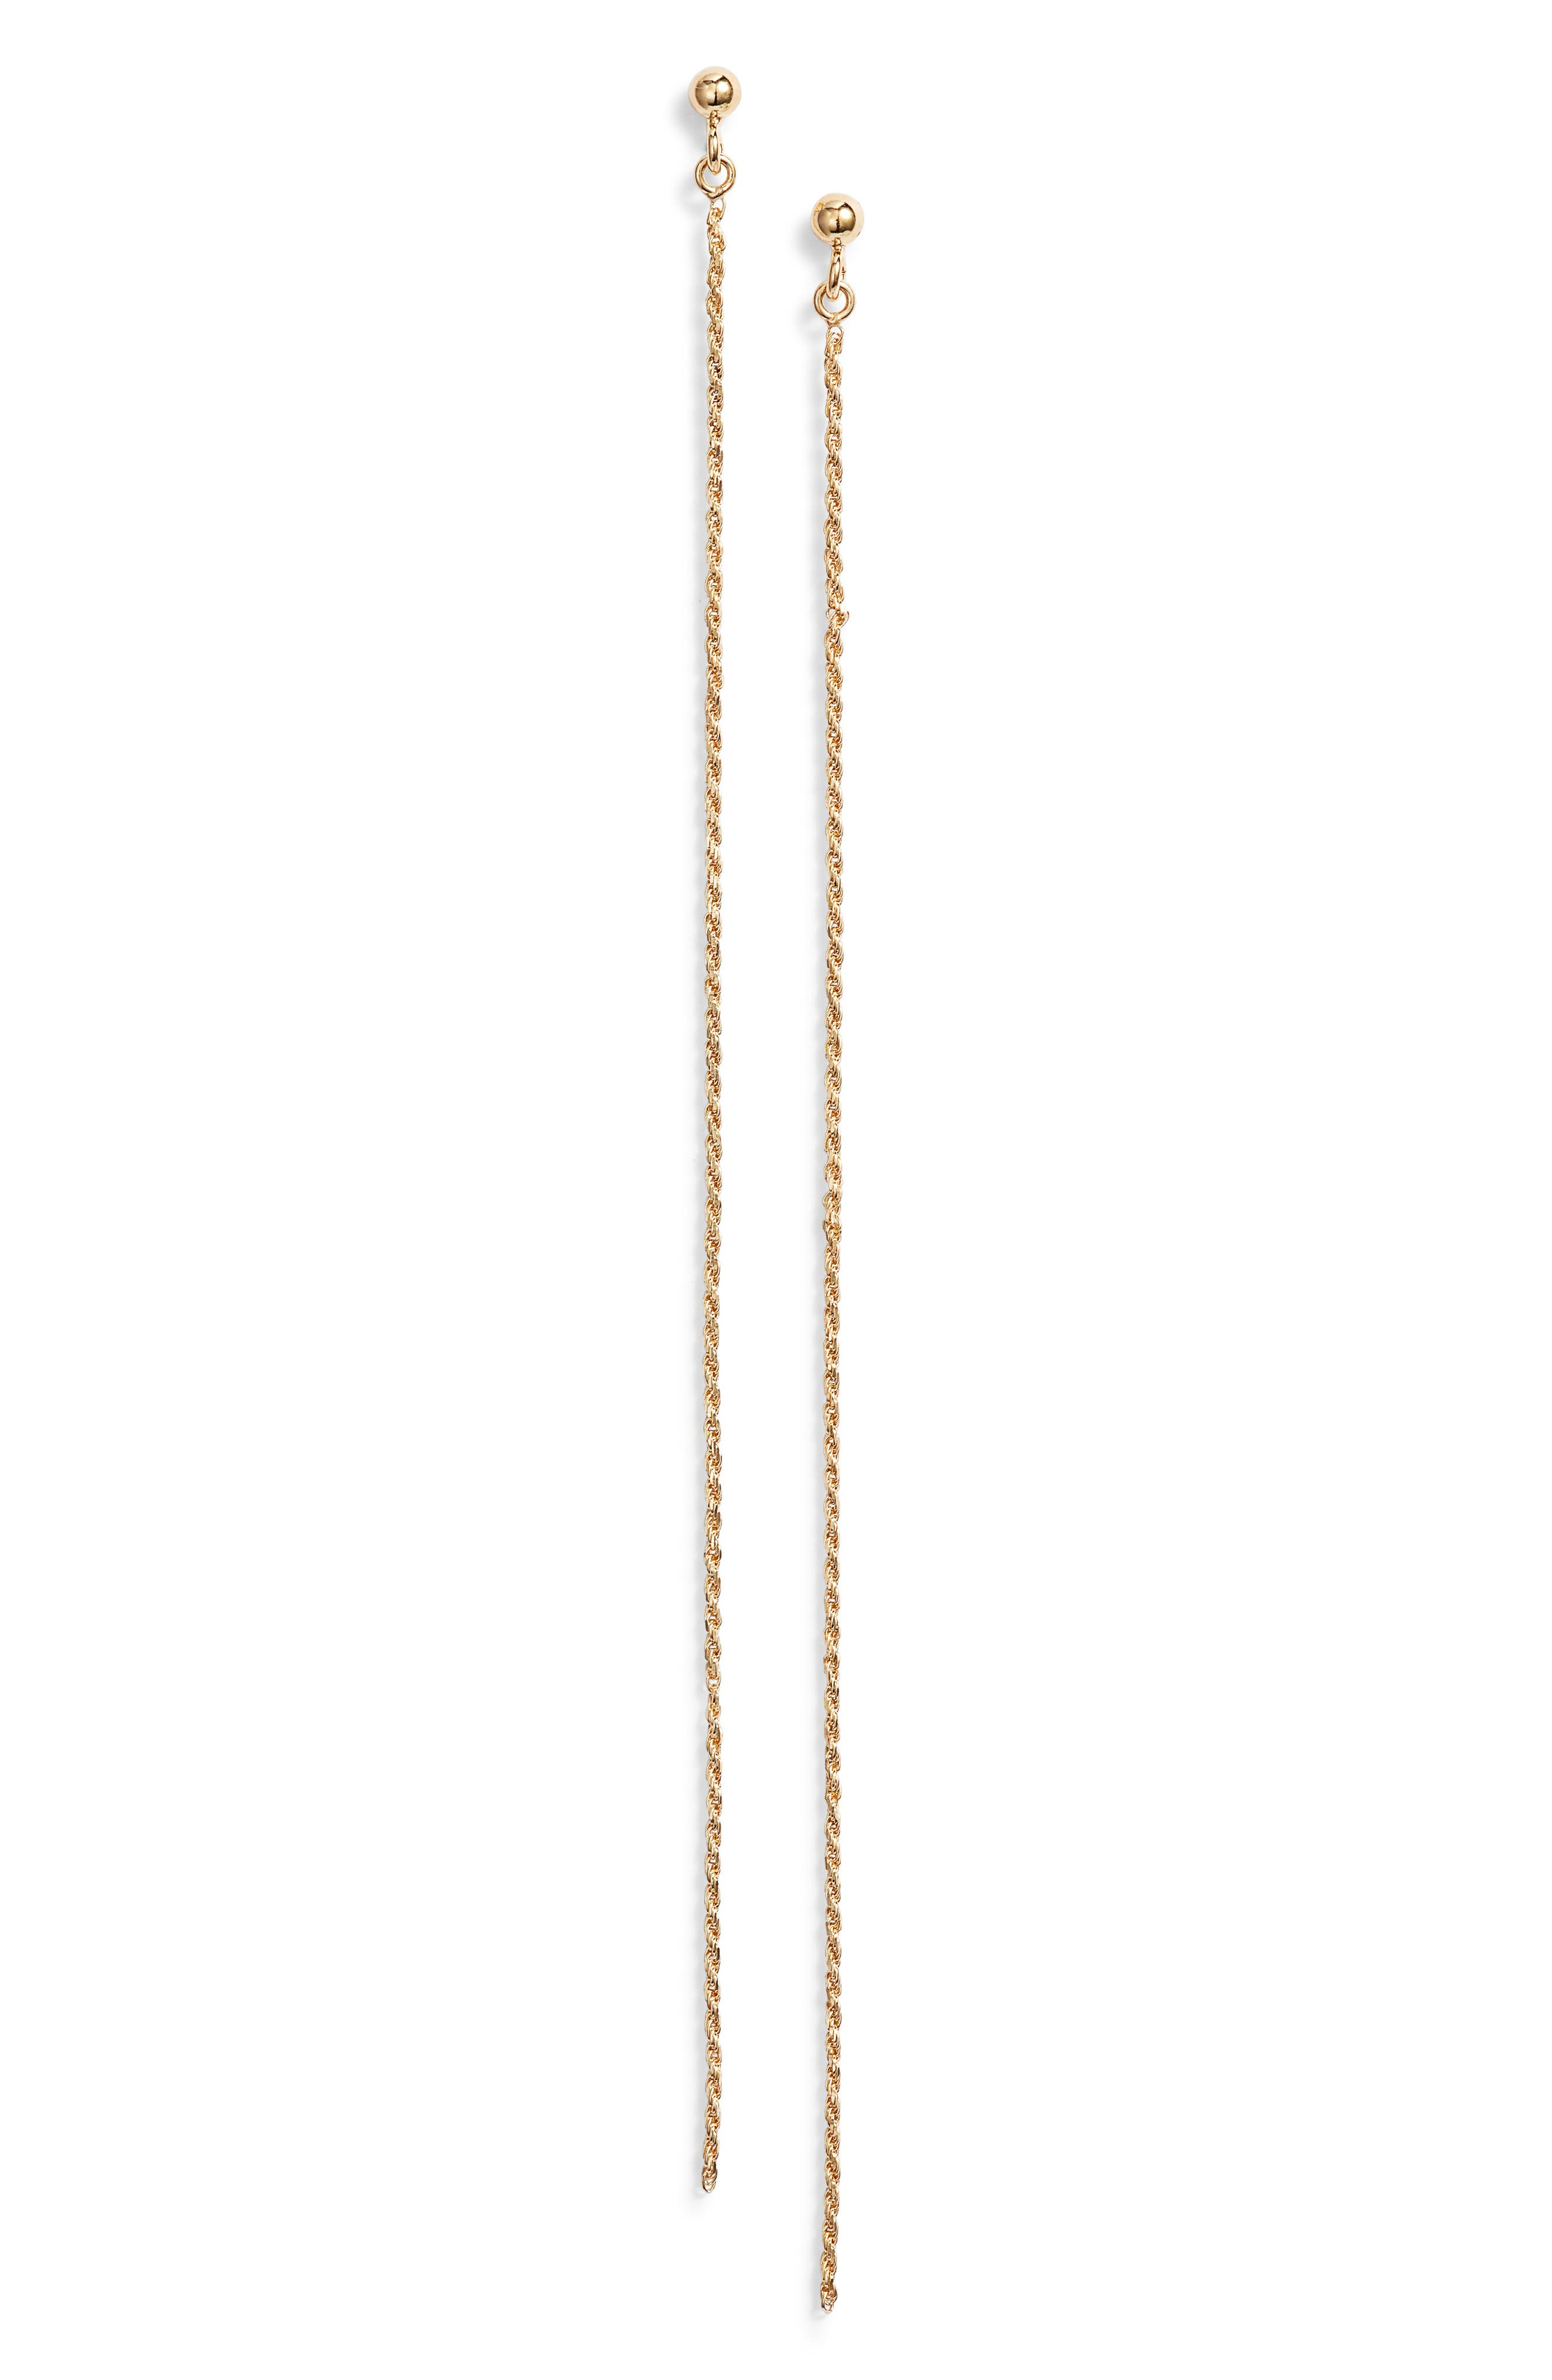 Chain Drop Earrings,                         Main,                         color, GOLD